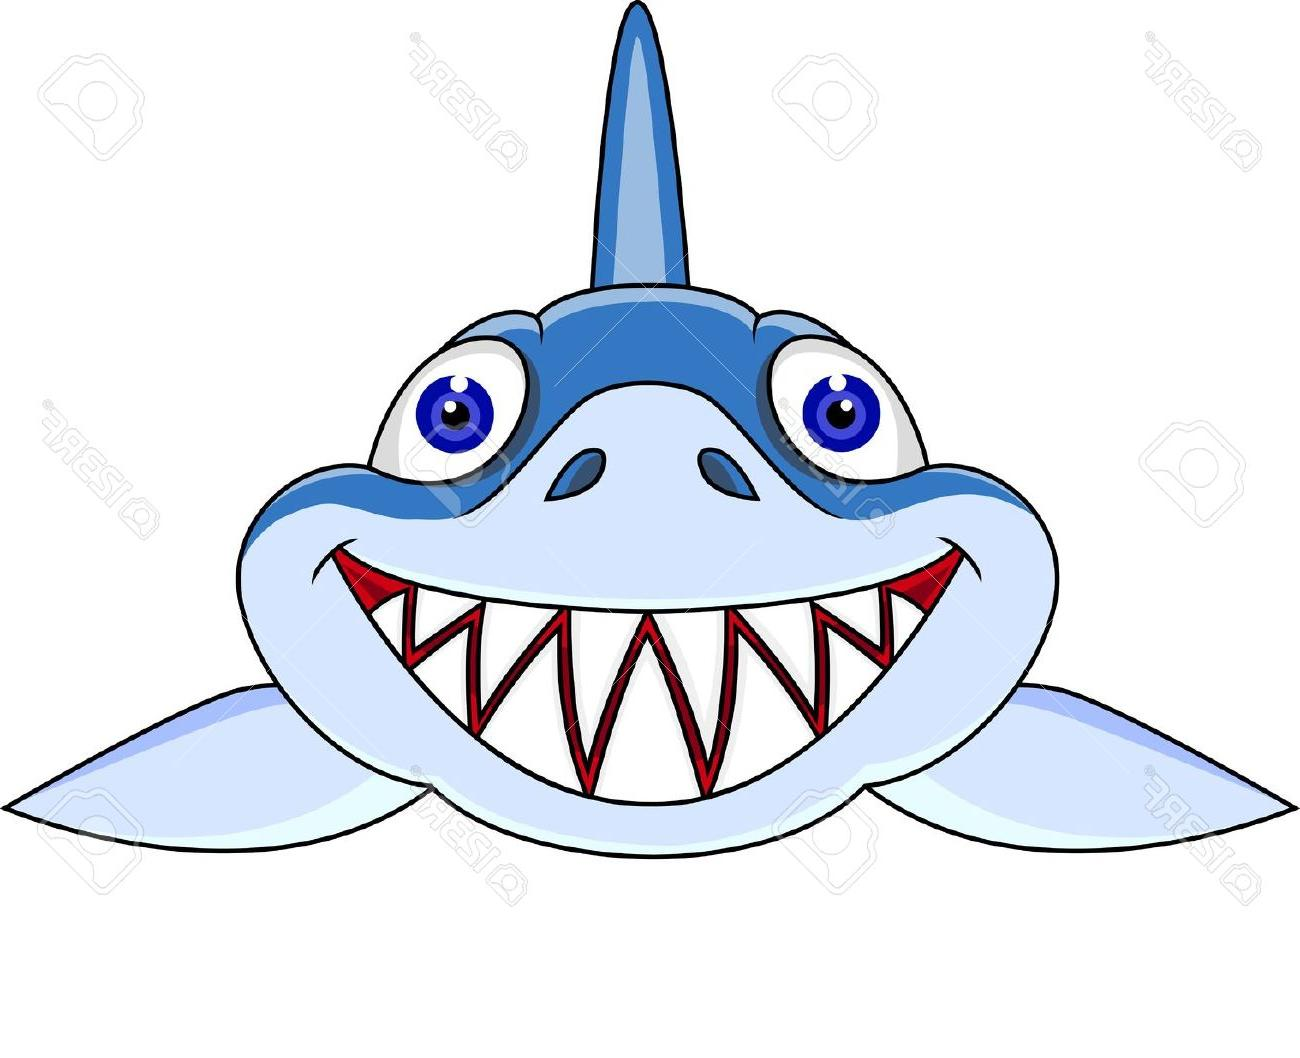 1300x1058 Best Free Shark Head Clip Art Cdr Free Vector Art, Images